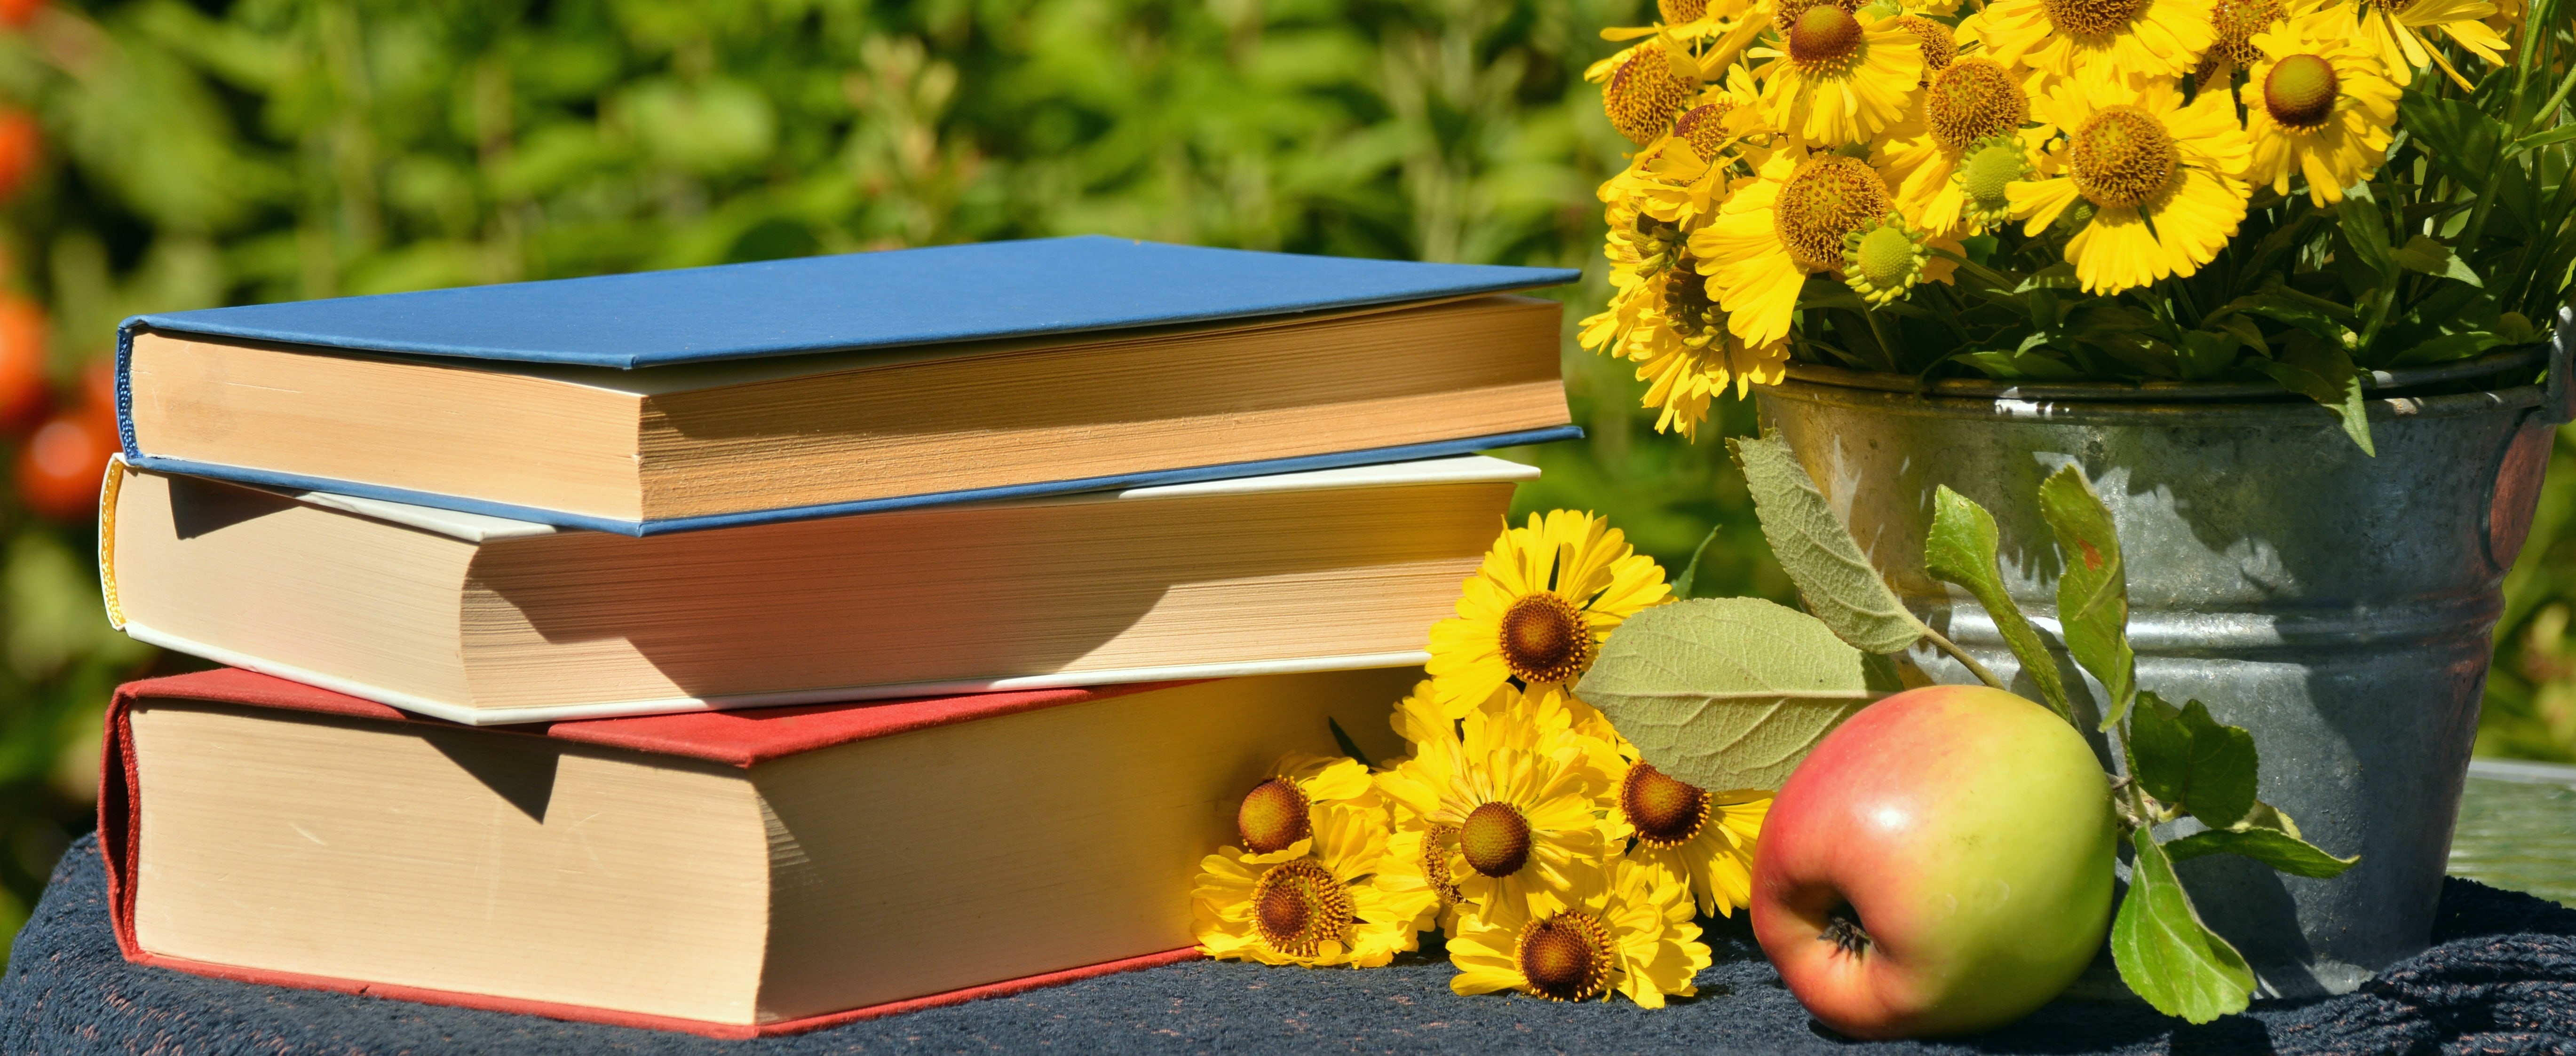 Books and sunflowers